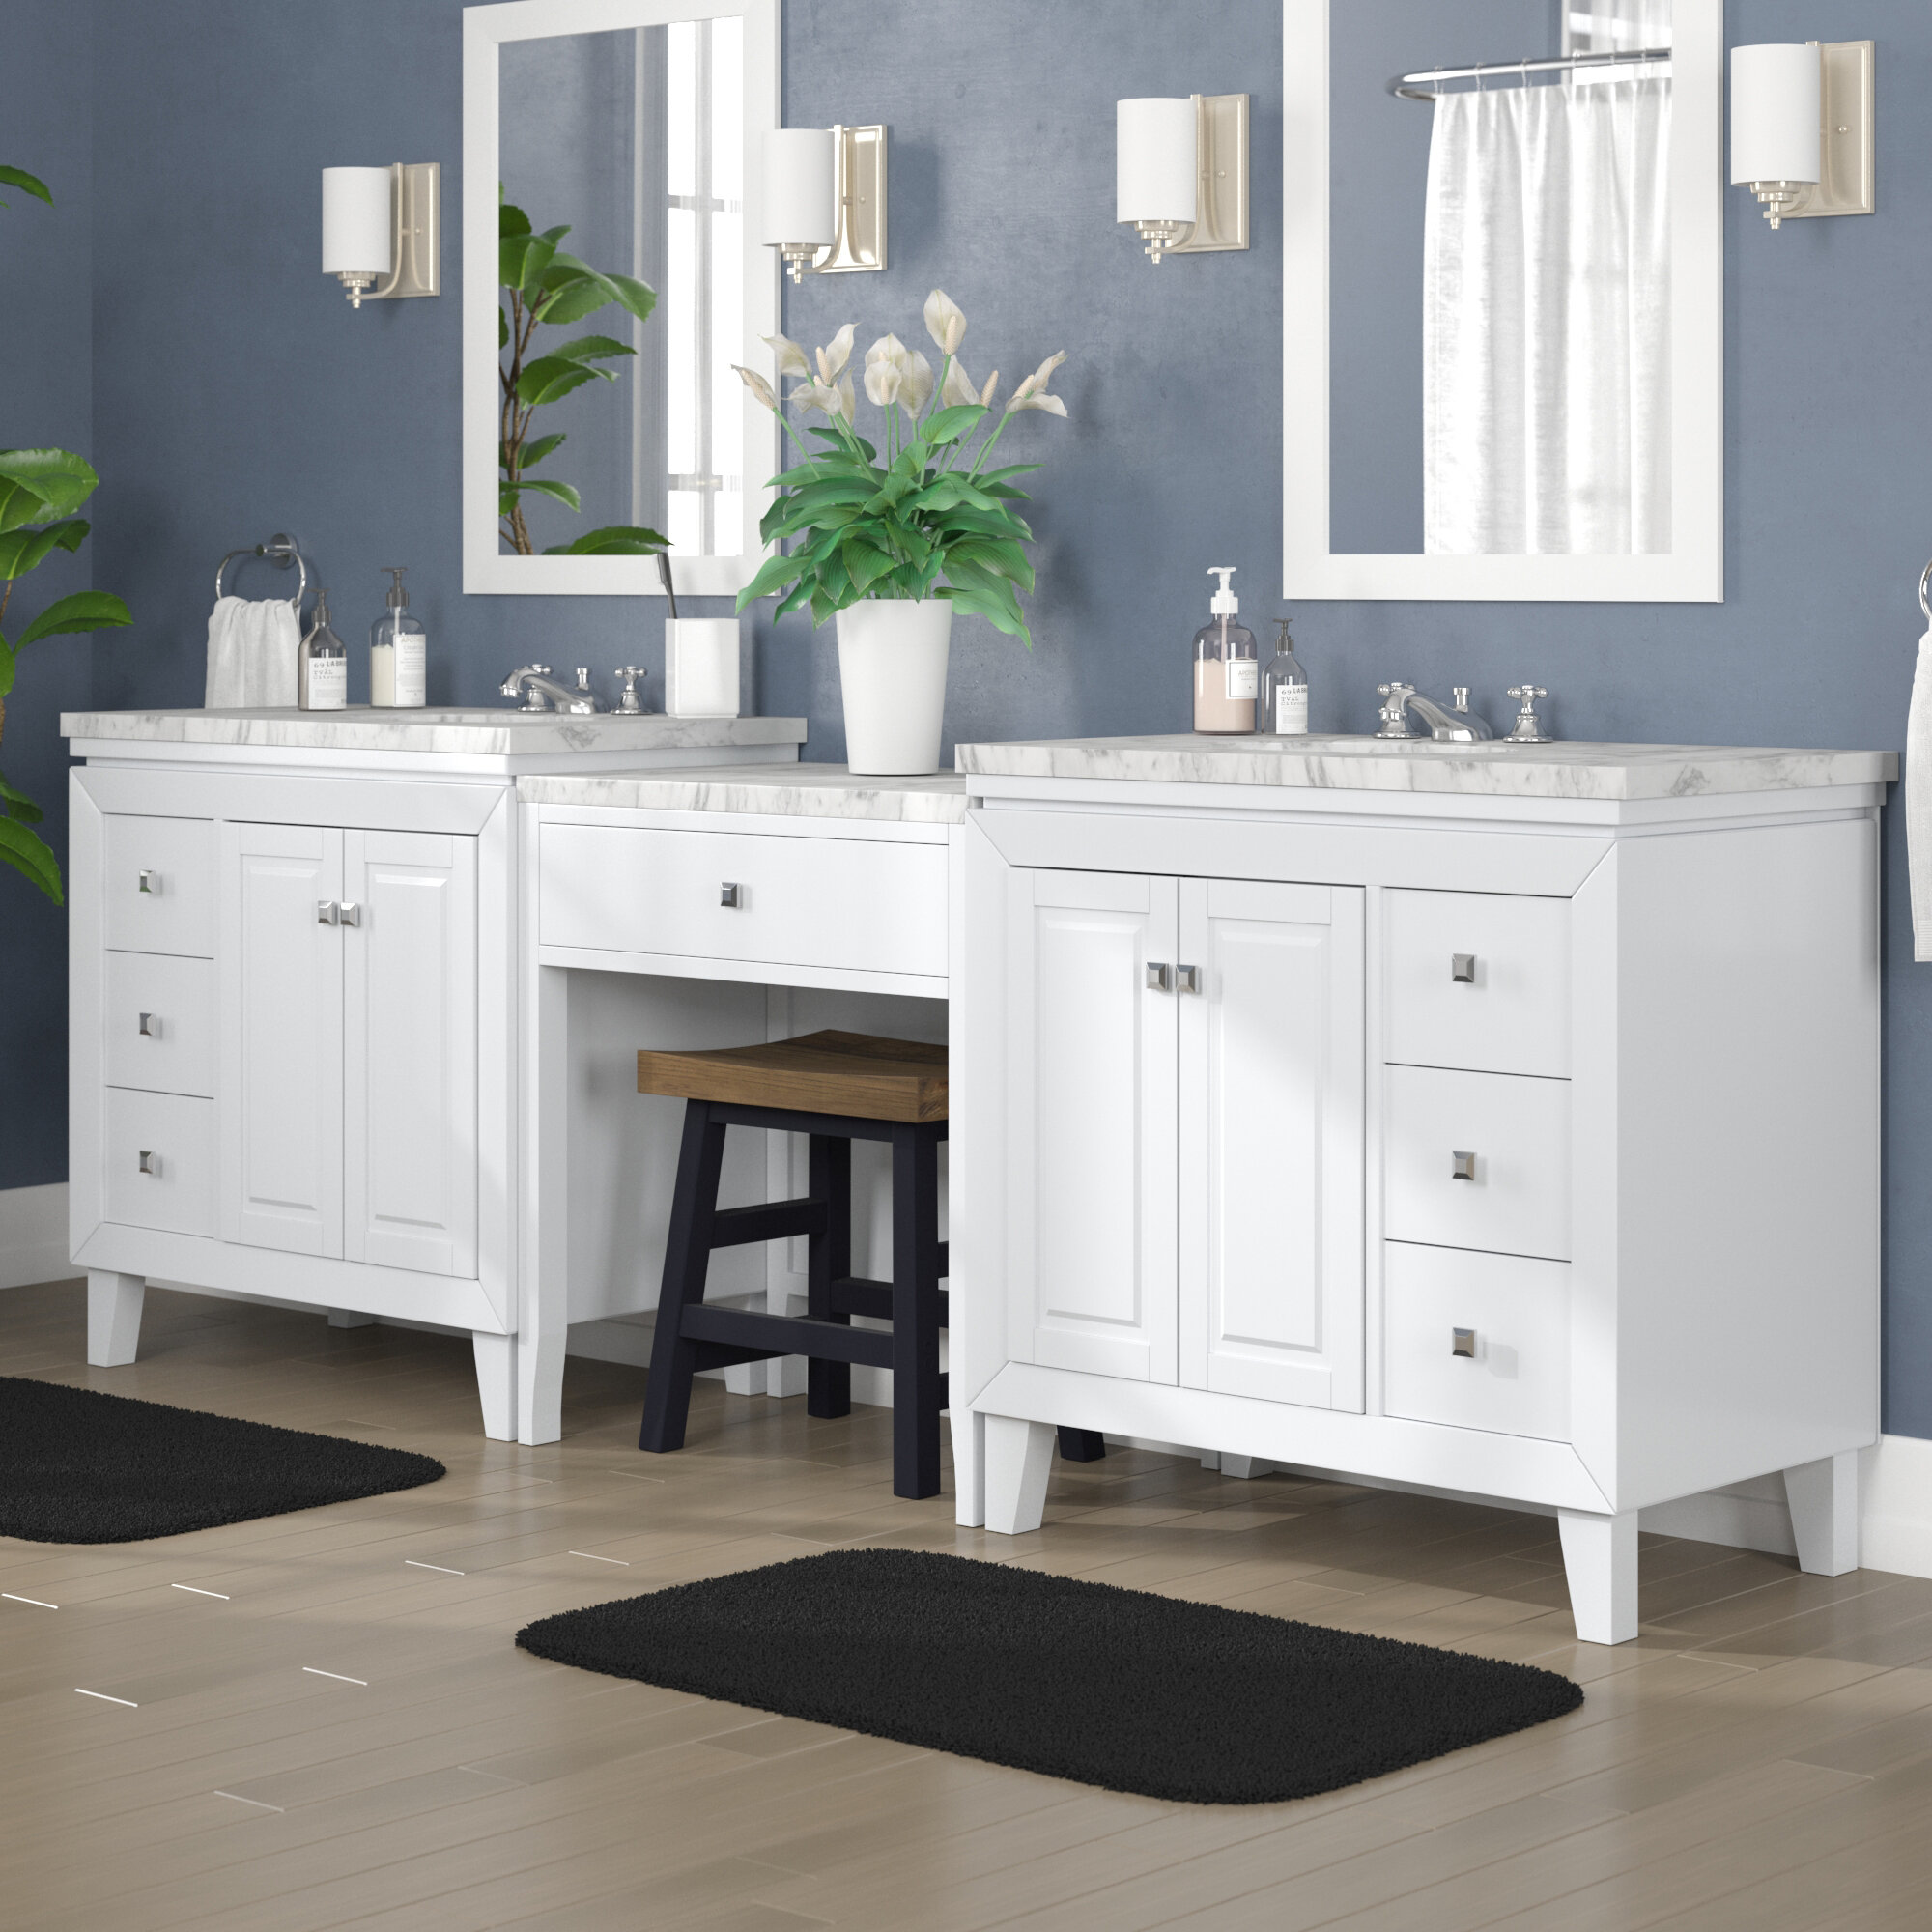 Alcott Hill Reynolds 103 Transitional Double Bathroom Vanity Set Reviews Wayfair